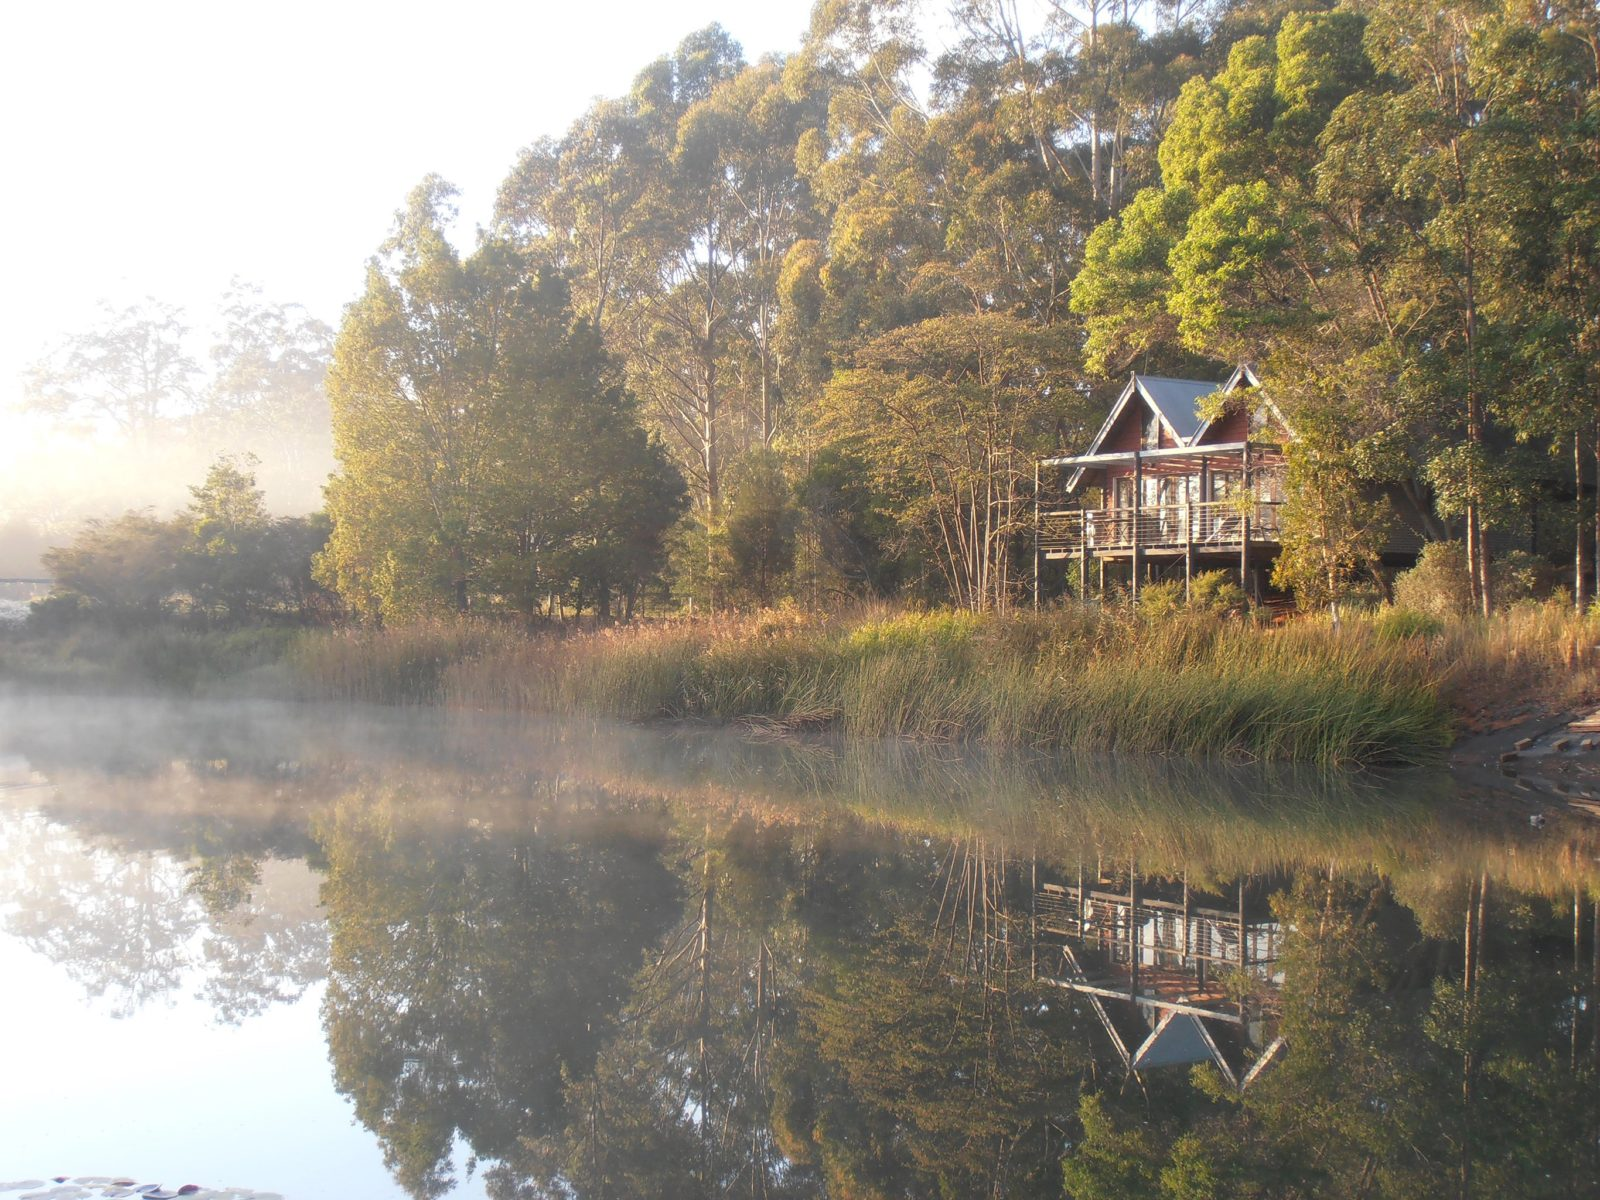 Early morning at The Boathouse